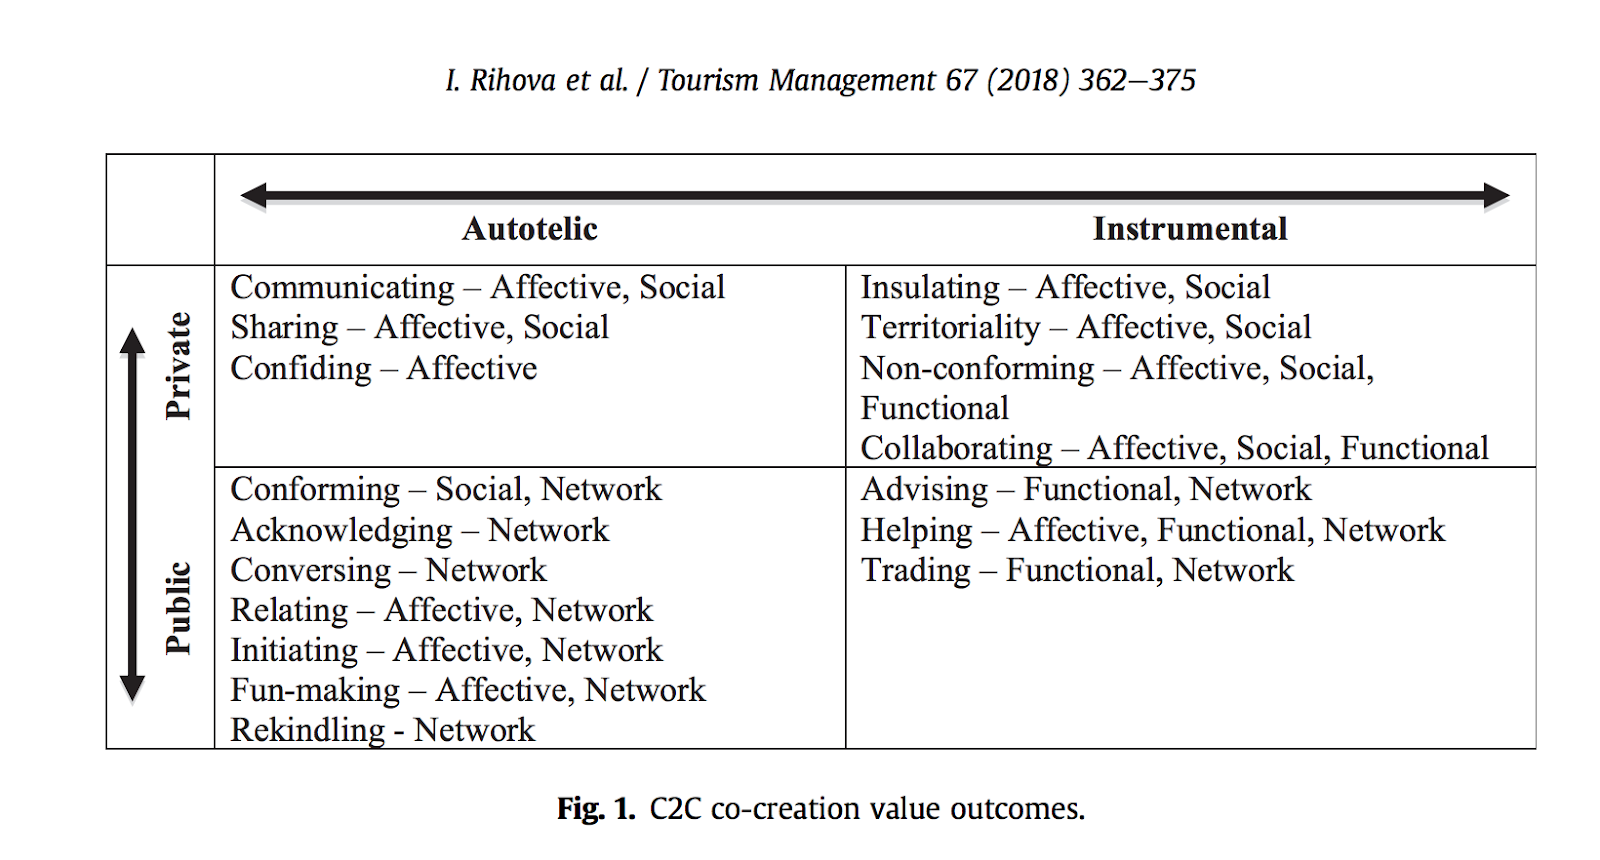 Rihova, I., Buhalis, D., Gouthro, M., Moital, M., 2018, Customer-to-customer co-creation practices in tourism: Lessons from Customer-Dominant logic, Tourism Management Vol.67,  pp.362-375 https://doi.org/10.1016/j.tourman.2018.02.010 OPEN ACCESS